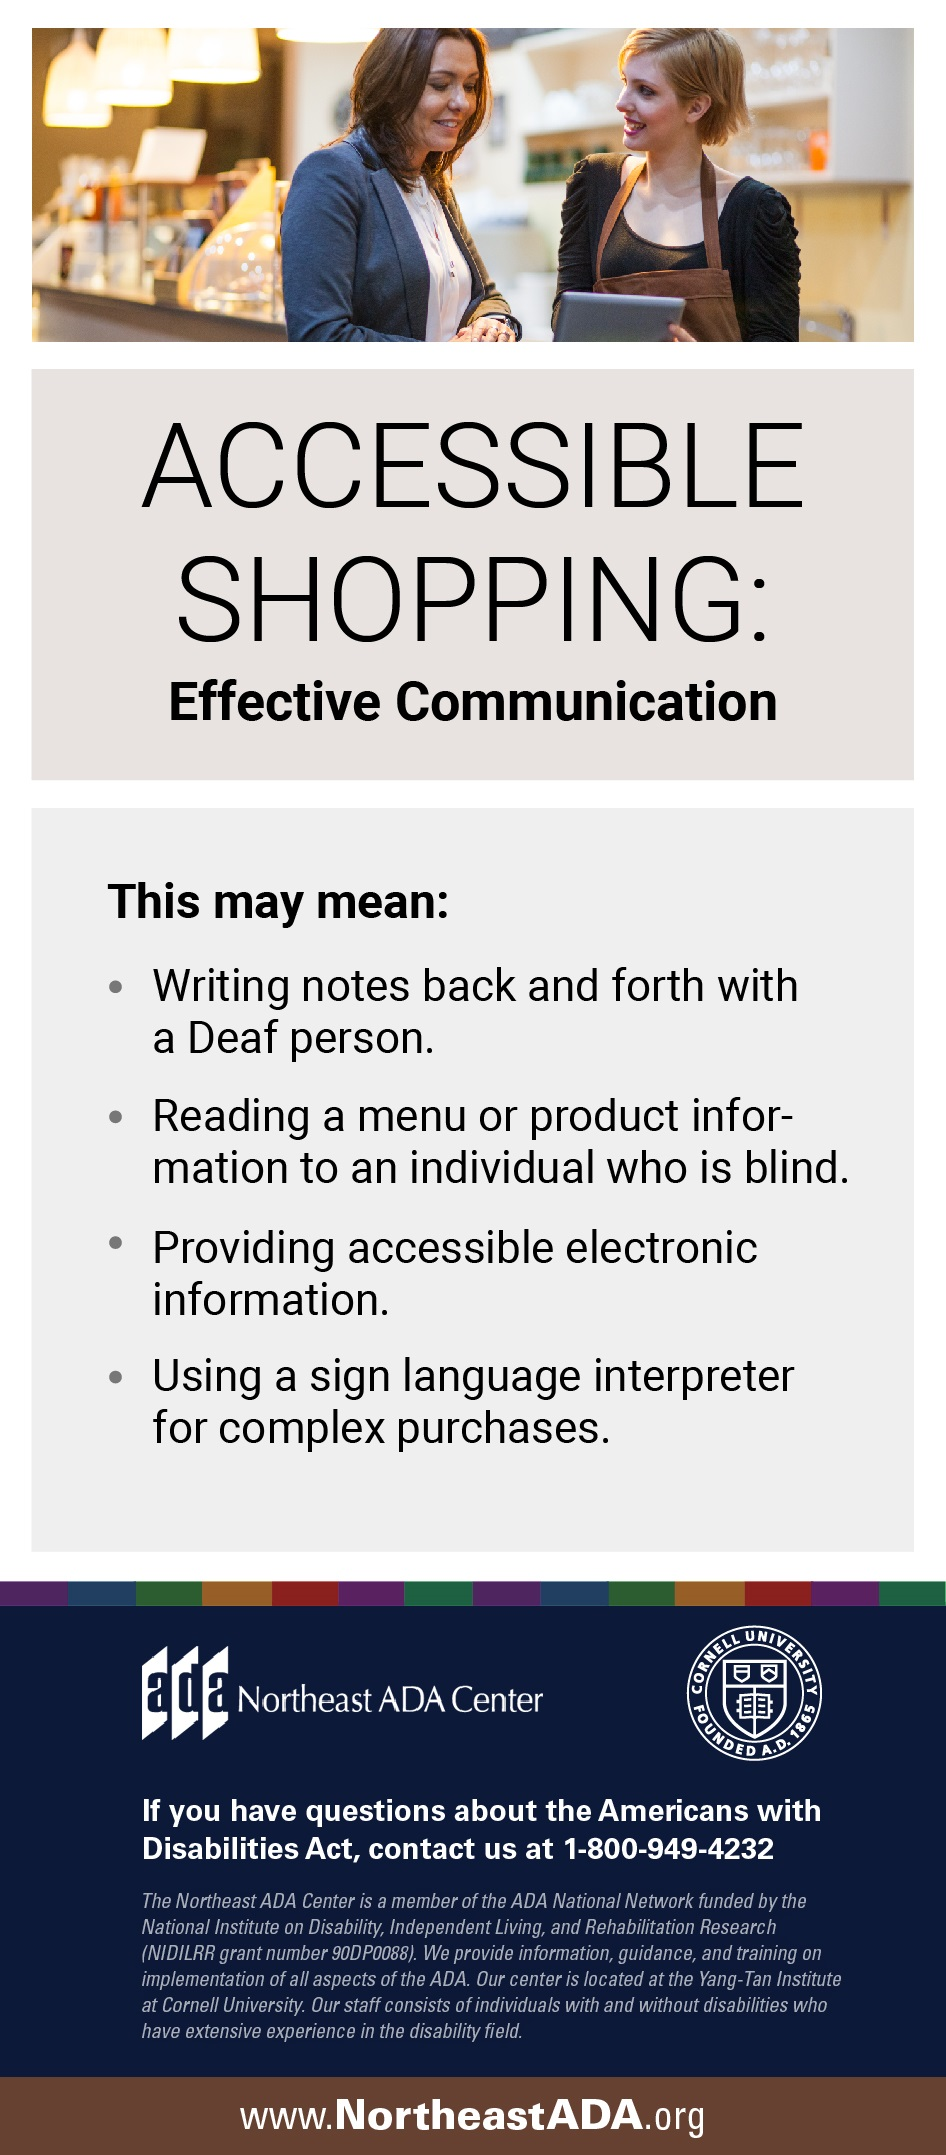 "Infographic titled ""Accessible Shopping: Effective Communication"" featuring two women looking at a tablet in a store.